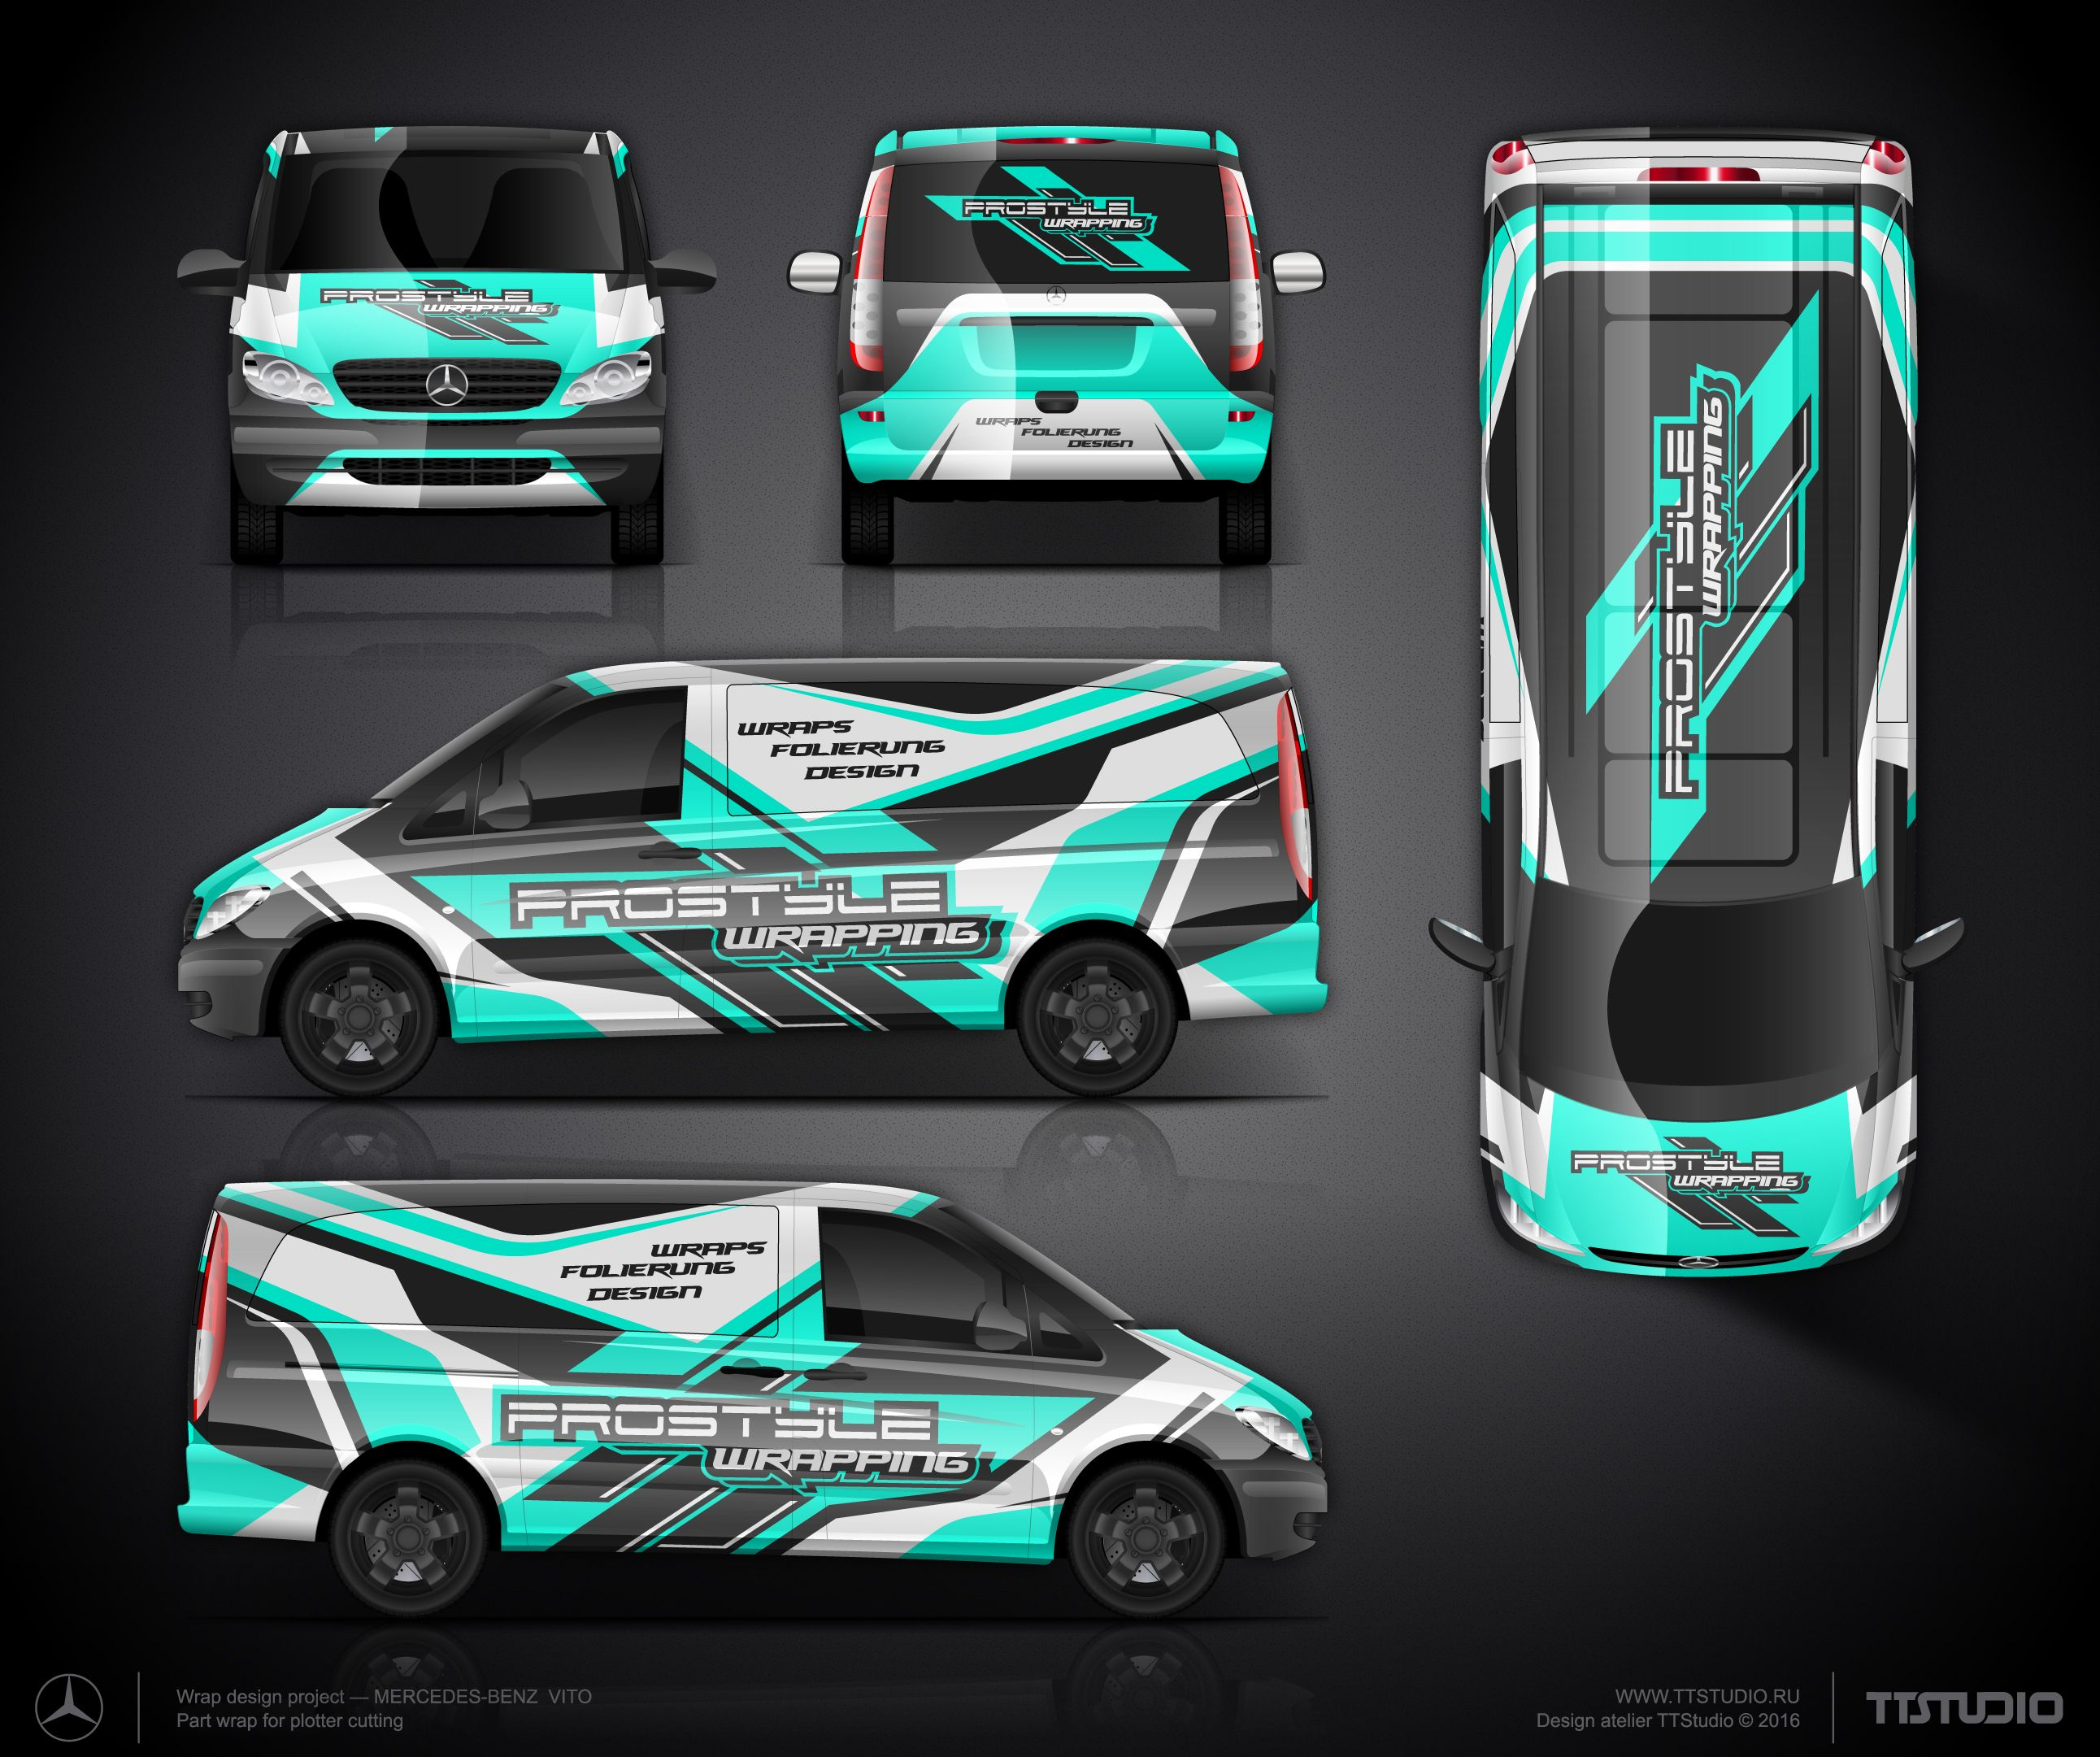 The Approved Commercial Wrap Design Project Car Wrap Design